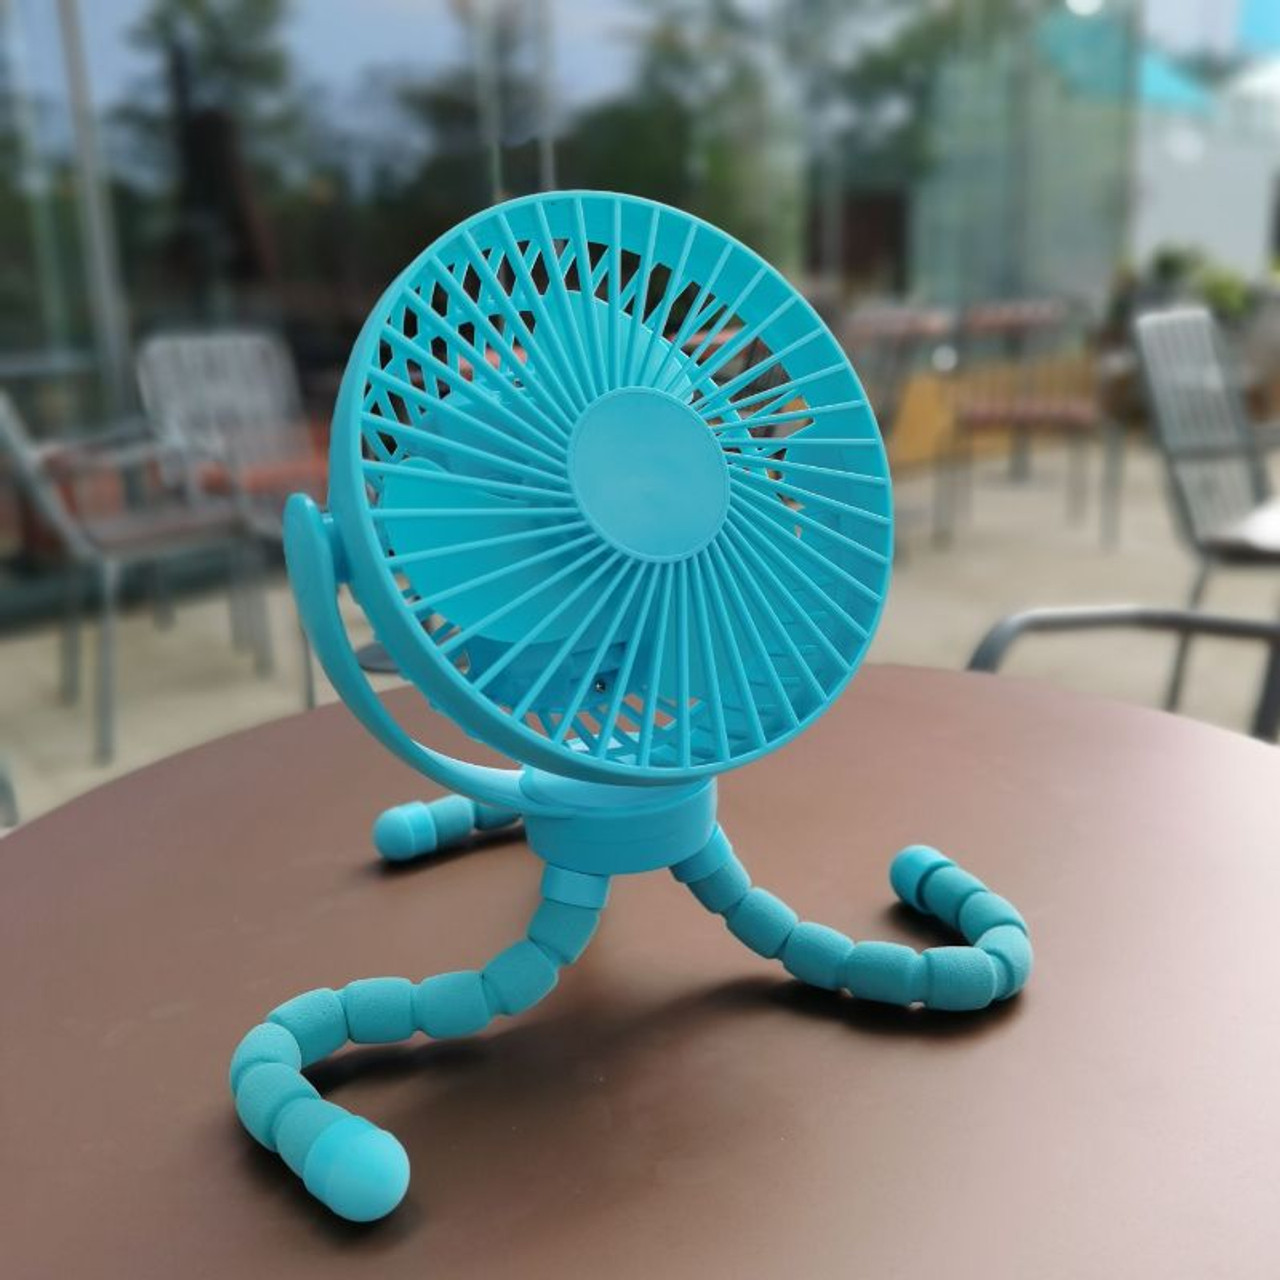 The Octopus Adjustable Arm Fan, Rechargeable, Cordless